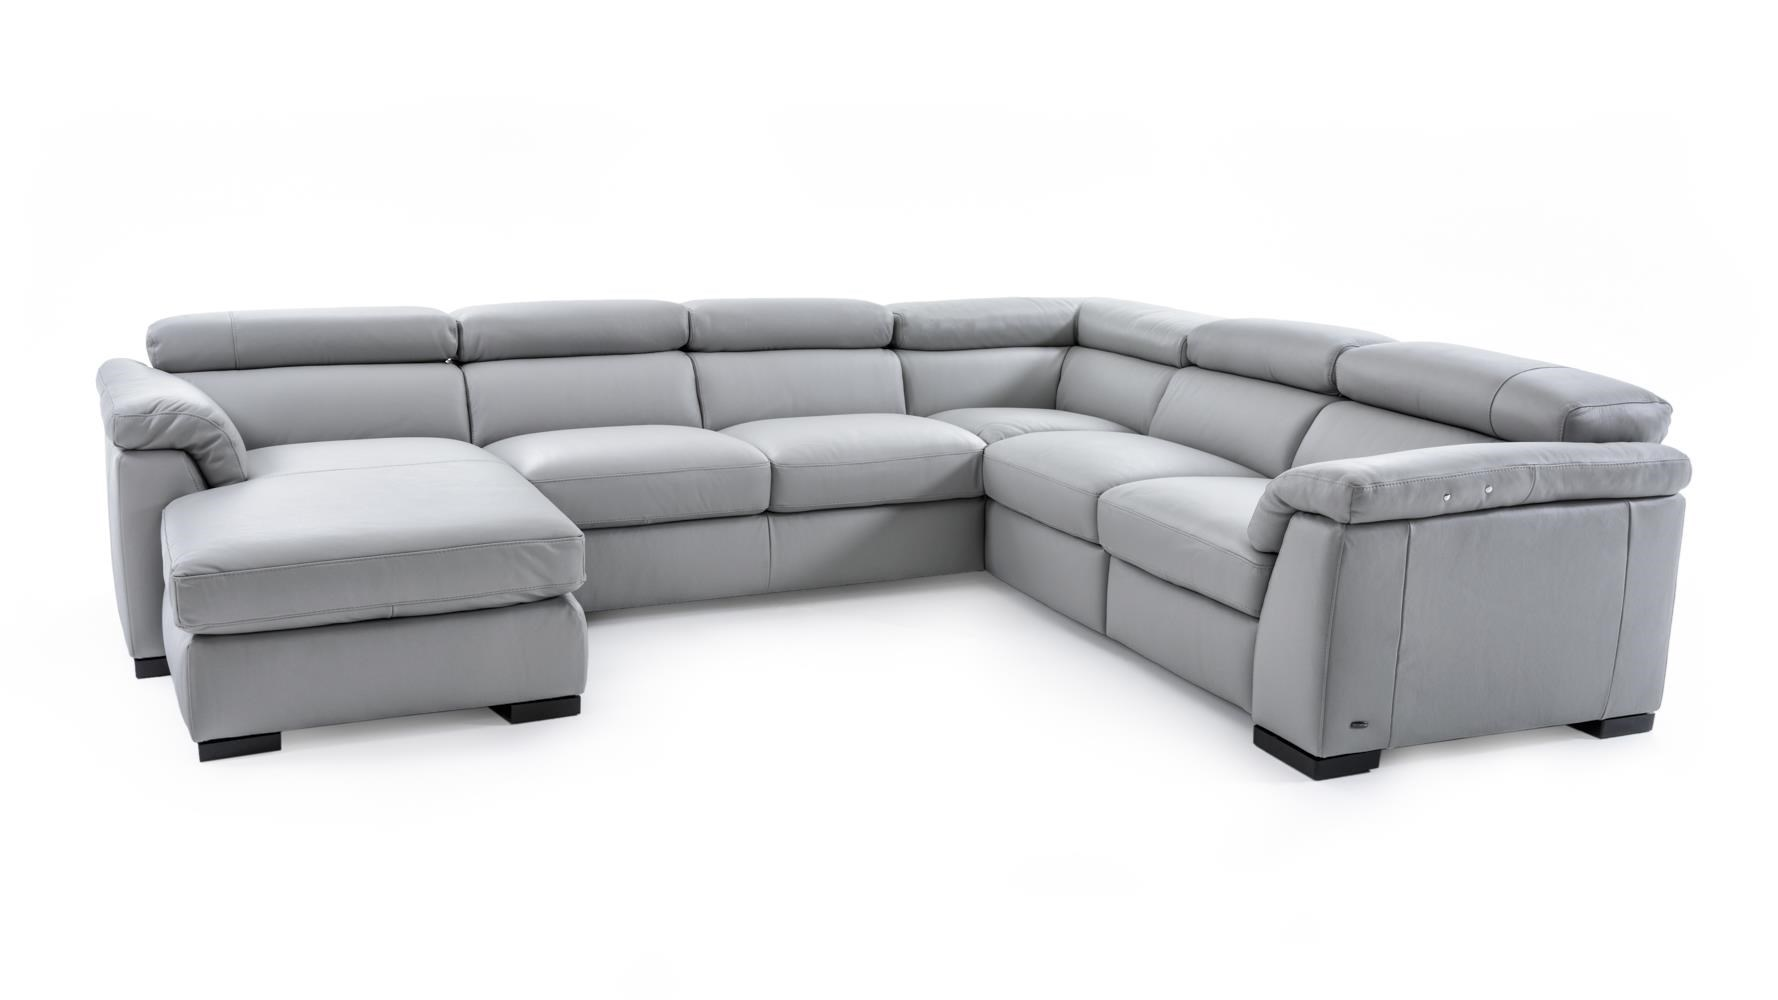 sectionals italy hauser indoor italia stores genny etoile chair sectional natuzzi products